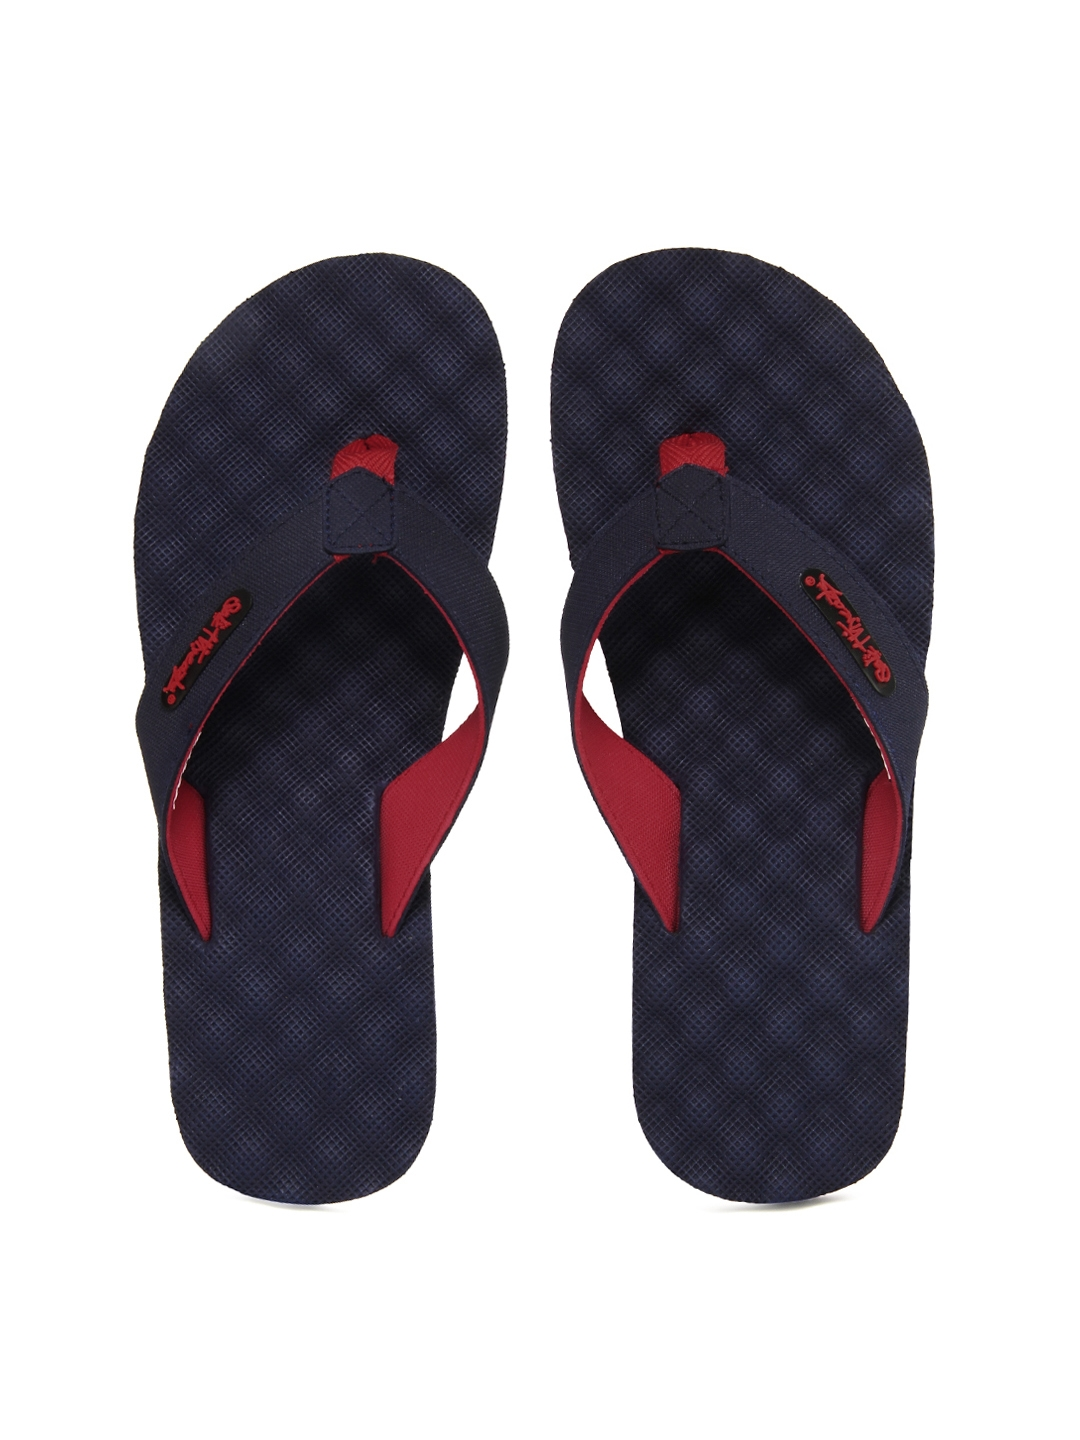 9a1ee89a3 Buy Sole Threads Men Navy Flip Flops - Flip Flops for Men 237399 ...